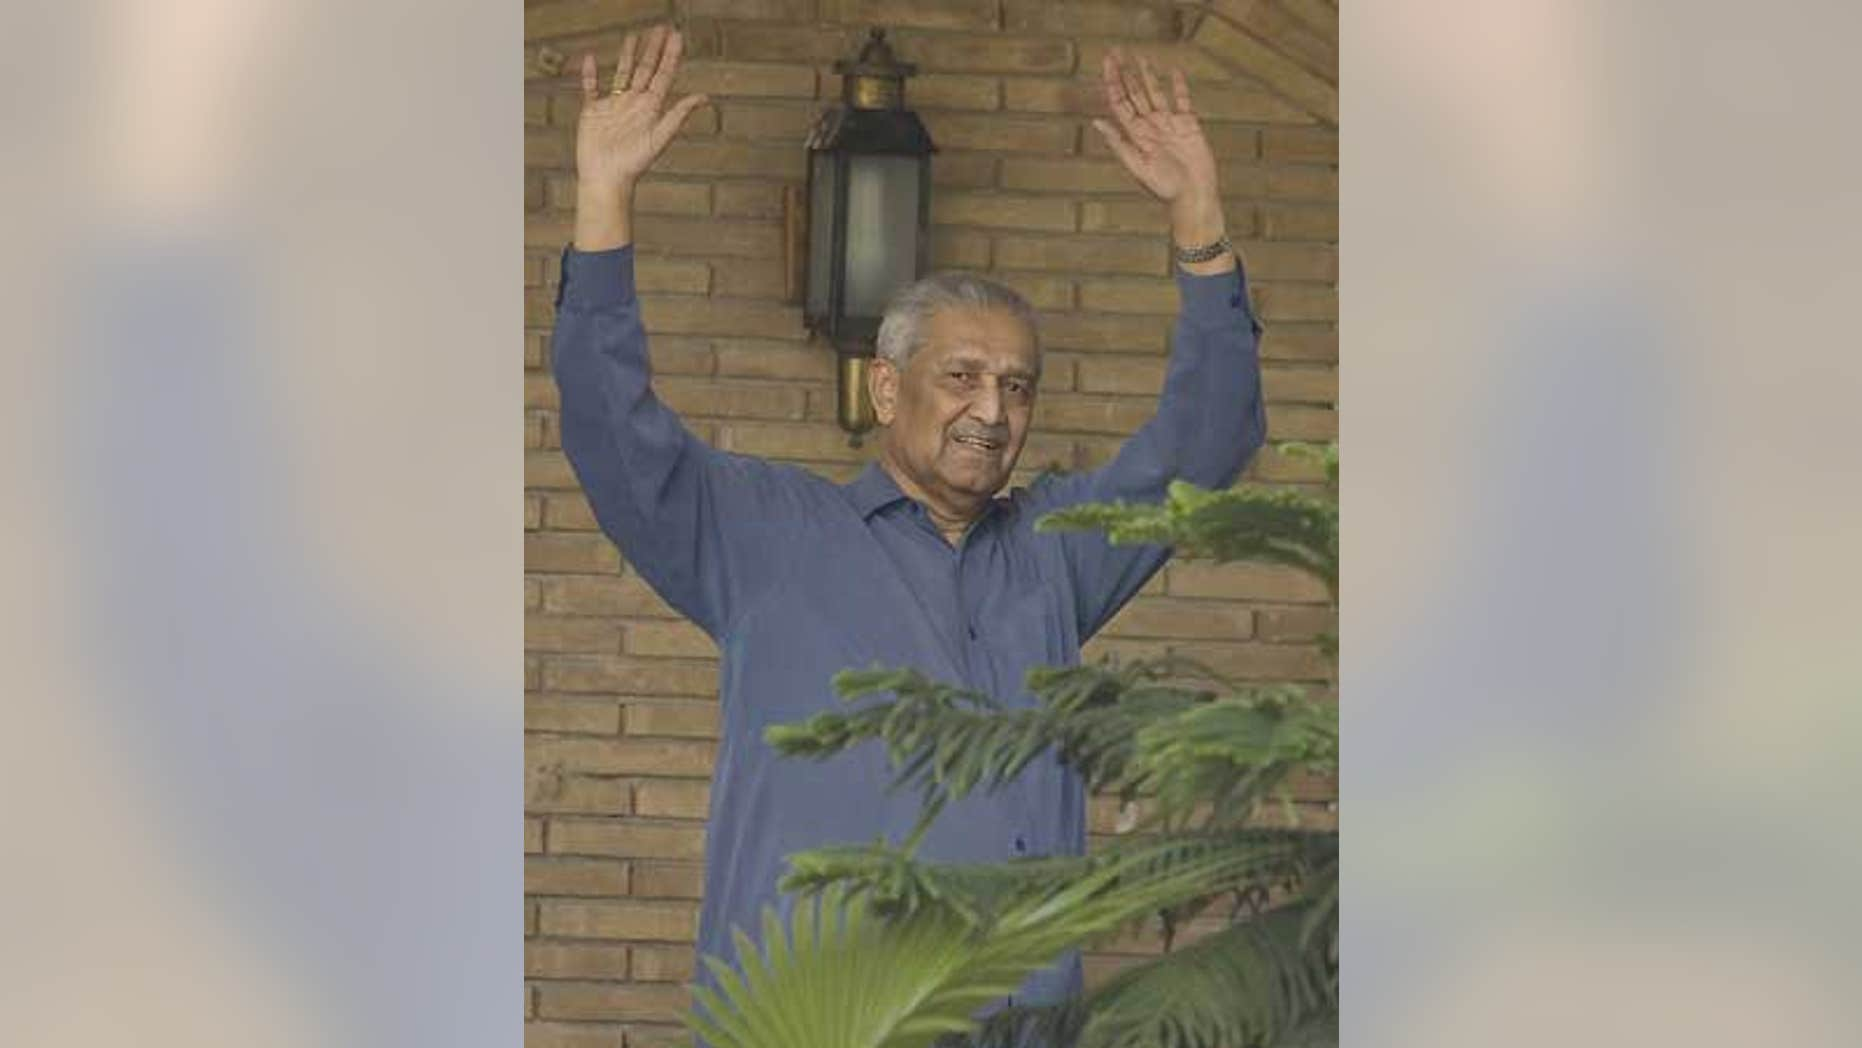 Feb. 6: Disgraced Pakistani nuclear scientist Abdul Qadeer Khan waves to media at his home in Islamabad, Pakistan.